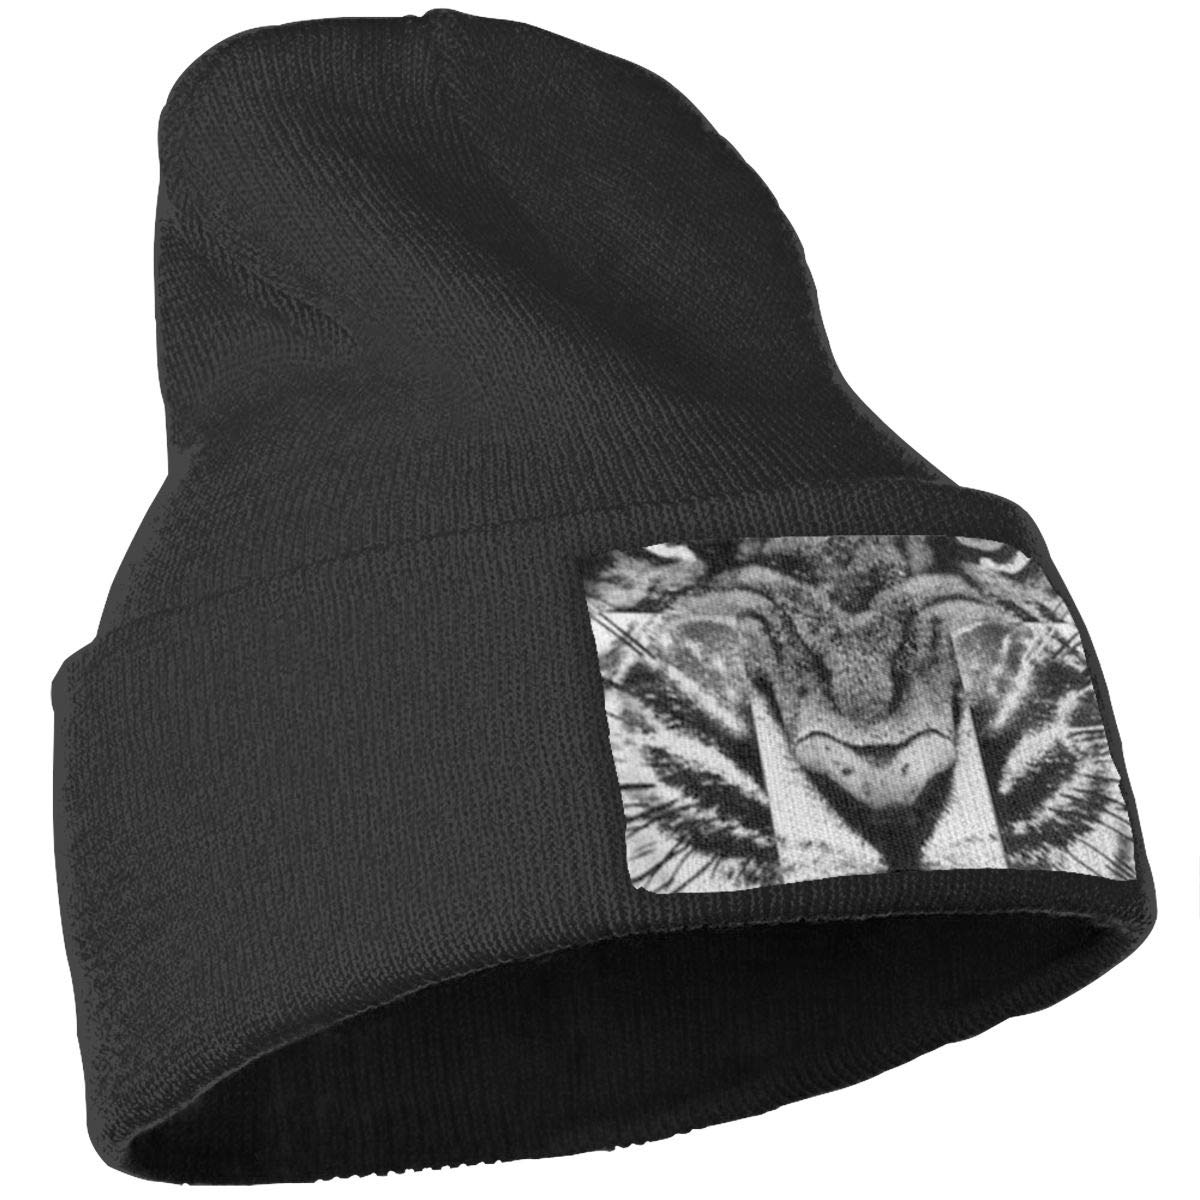 Roar Tiger Hat for Men and Women Winter Warm Hats Knit Slouchy Thick Skull Cap Black